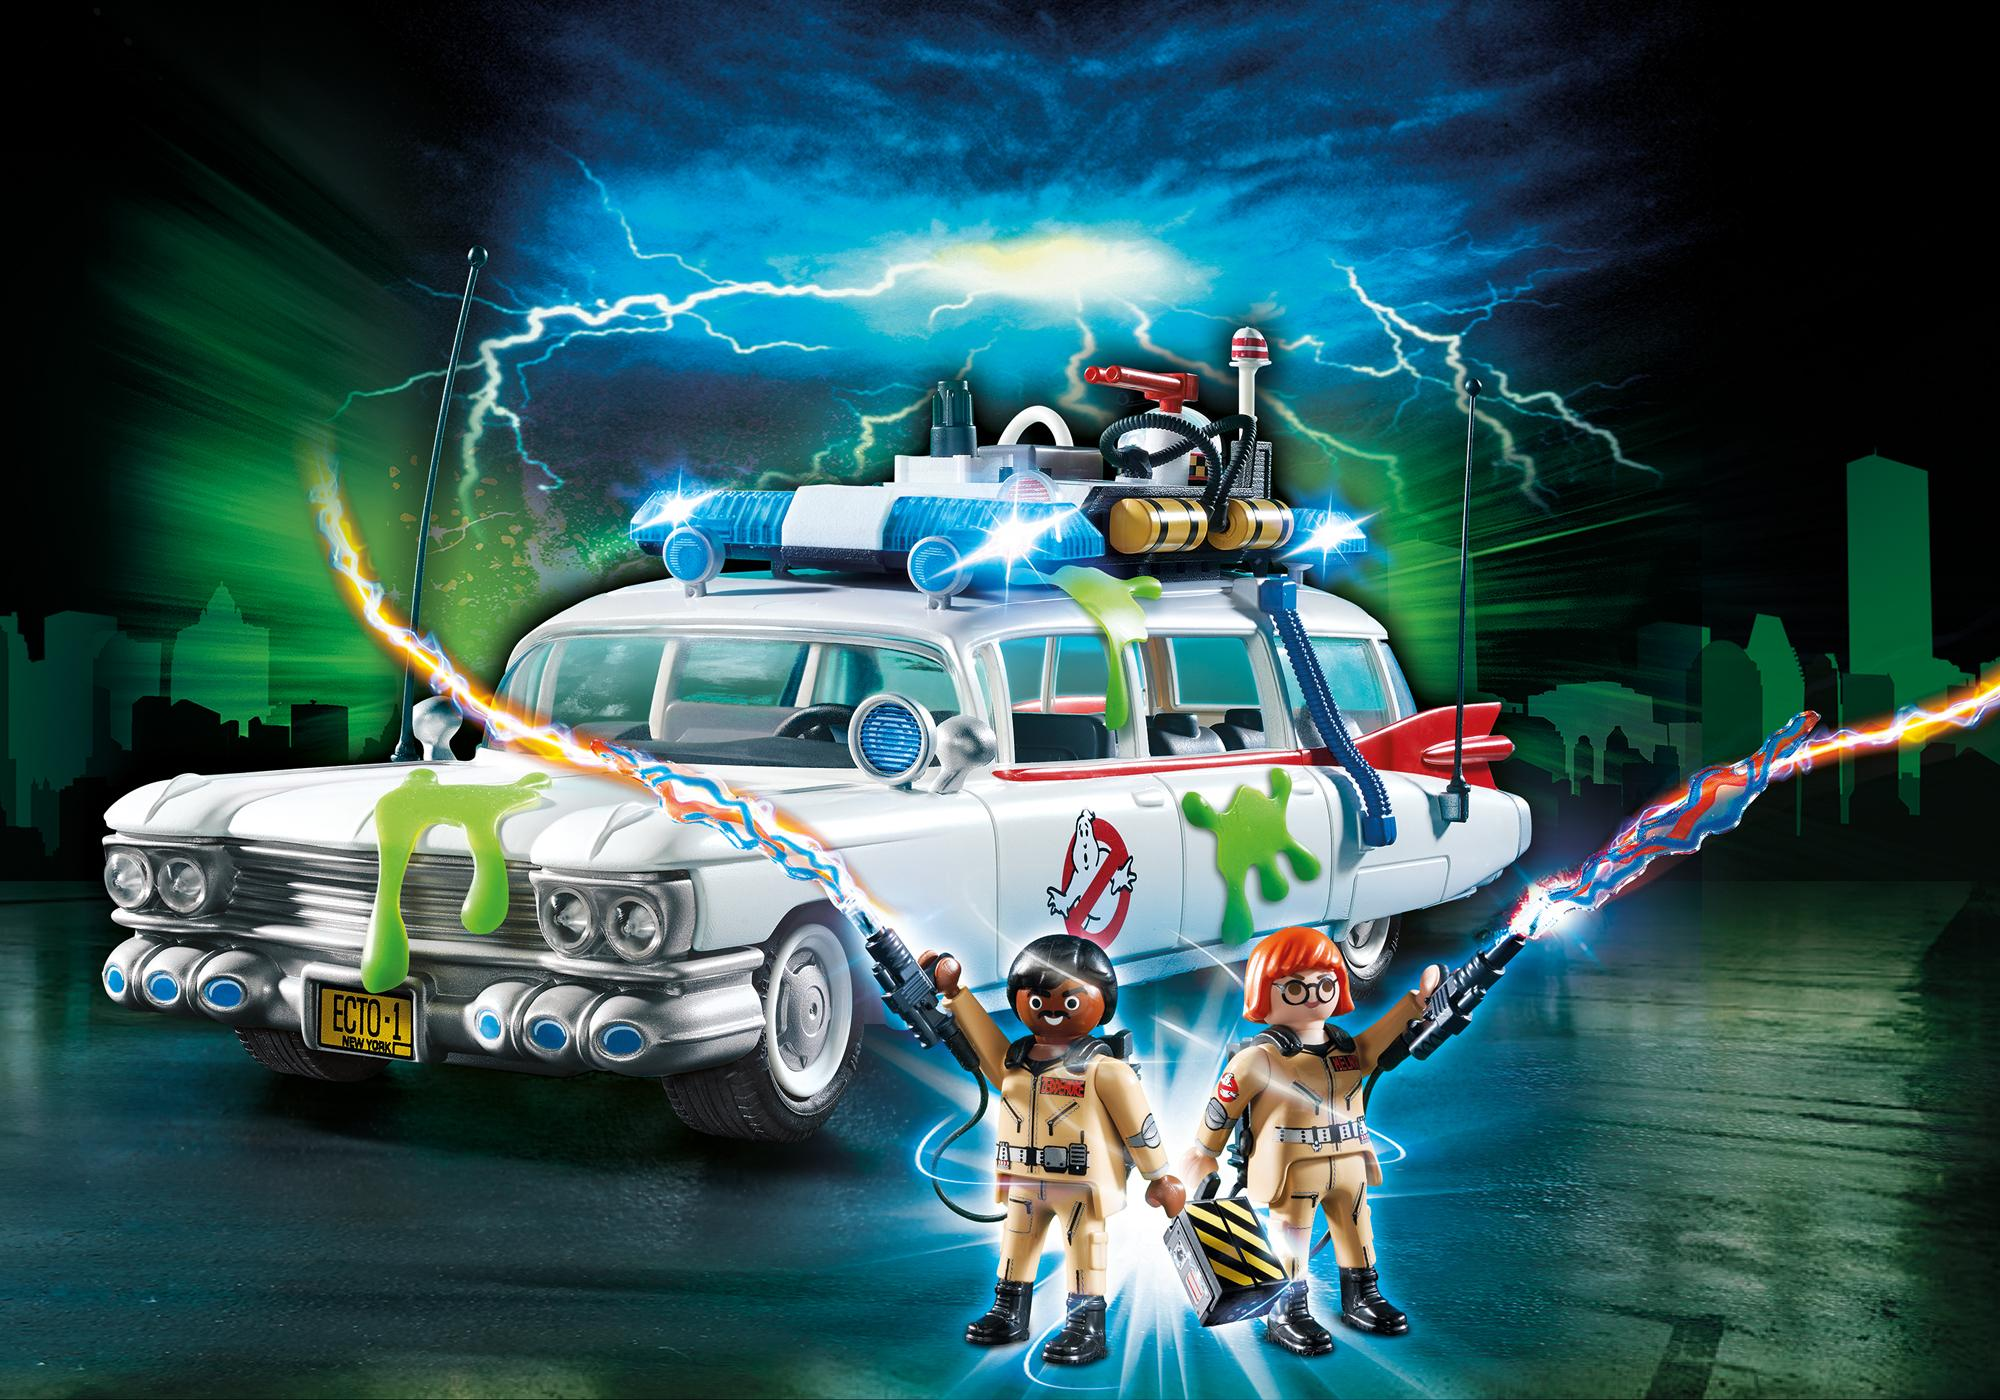 9220_product_detail/Ghostbusters Ecto-1